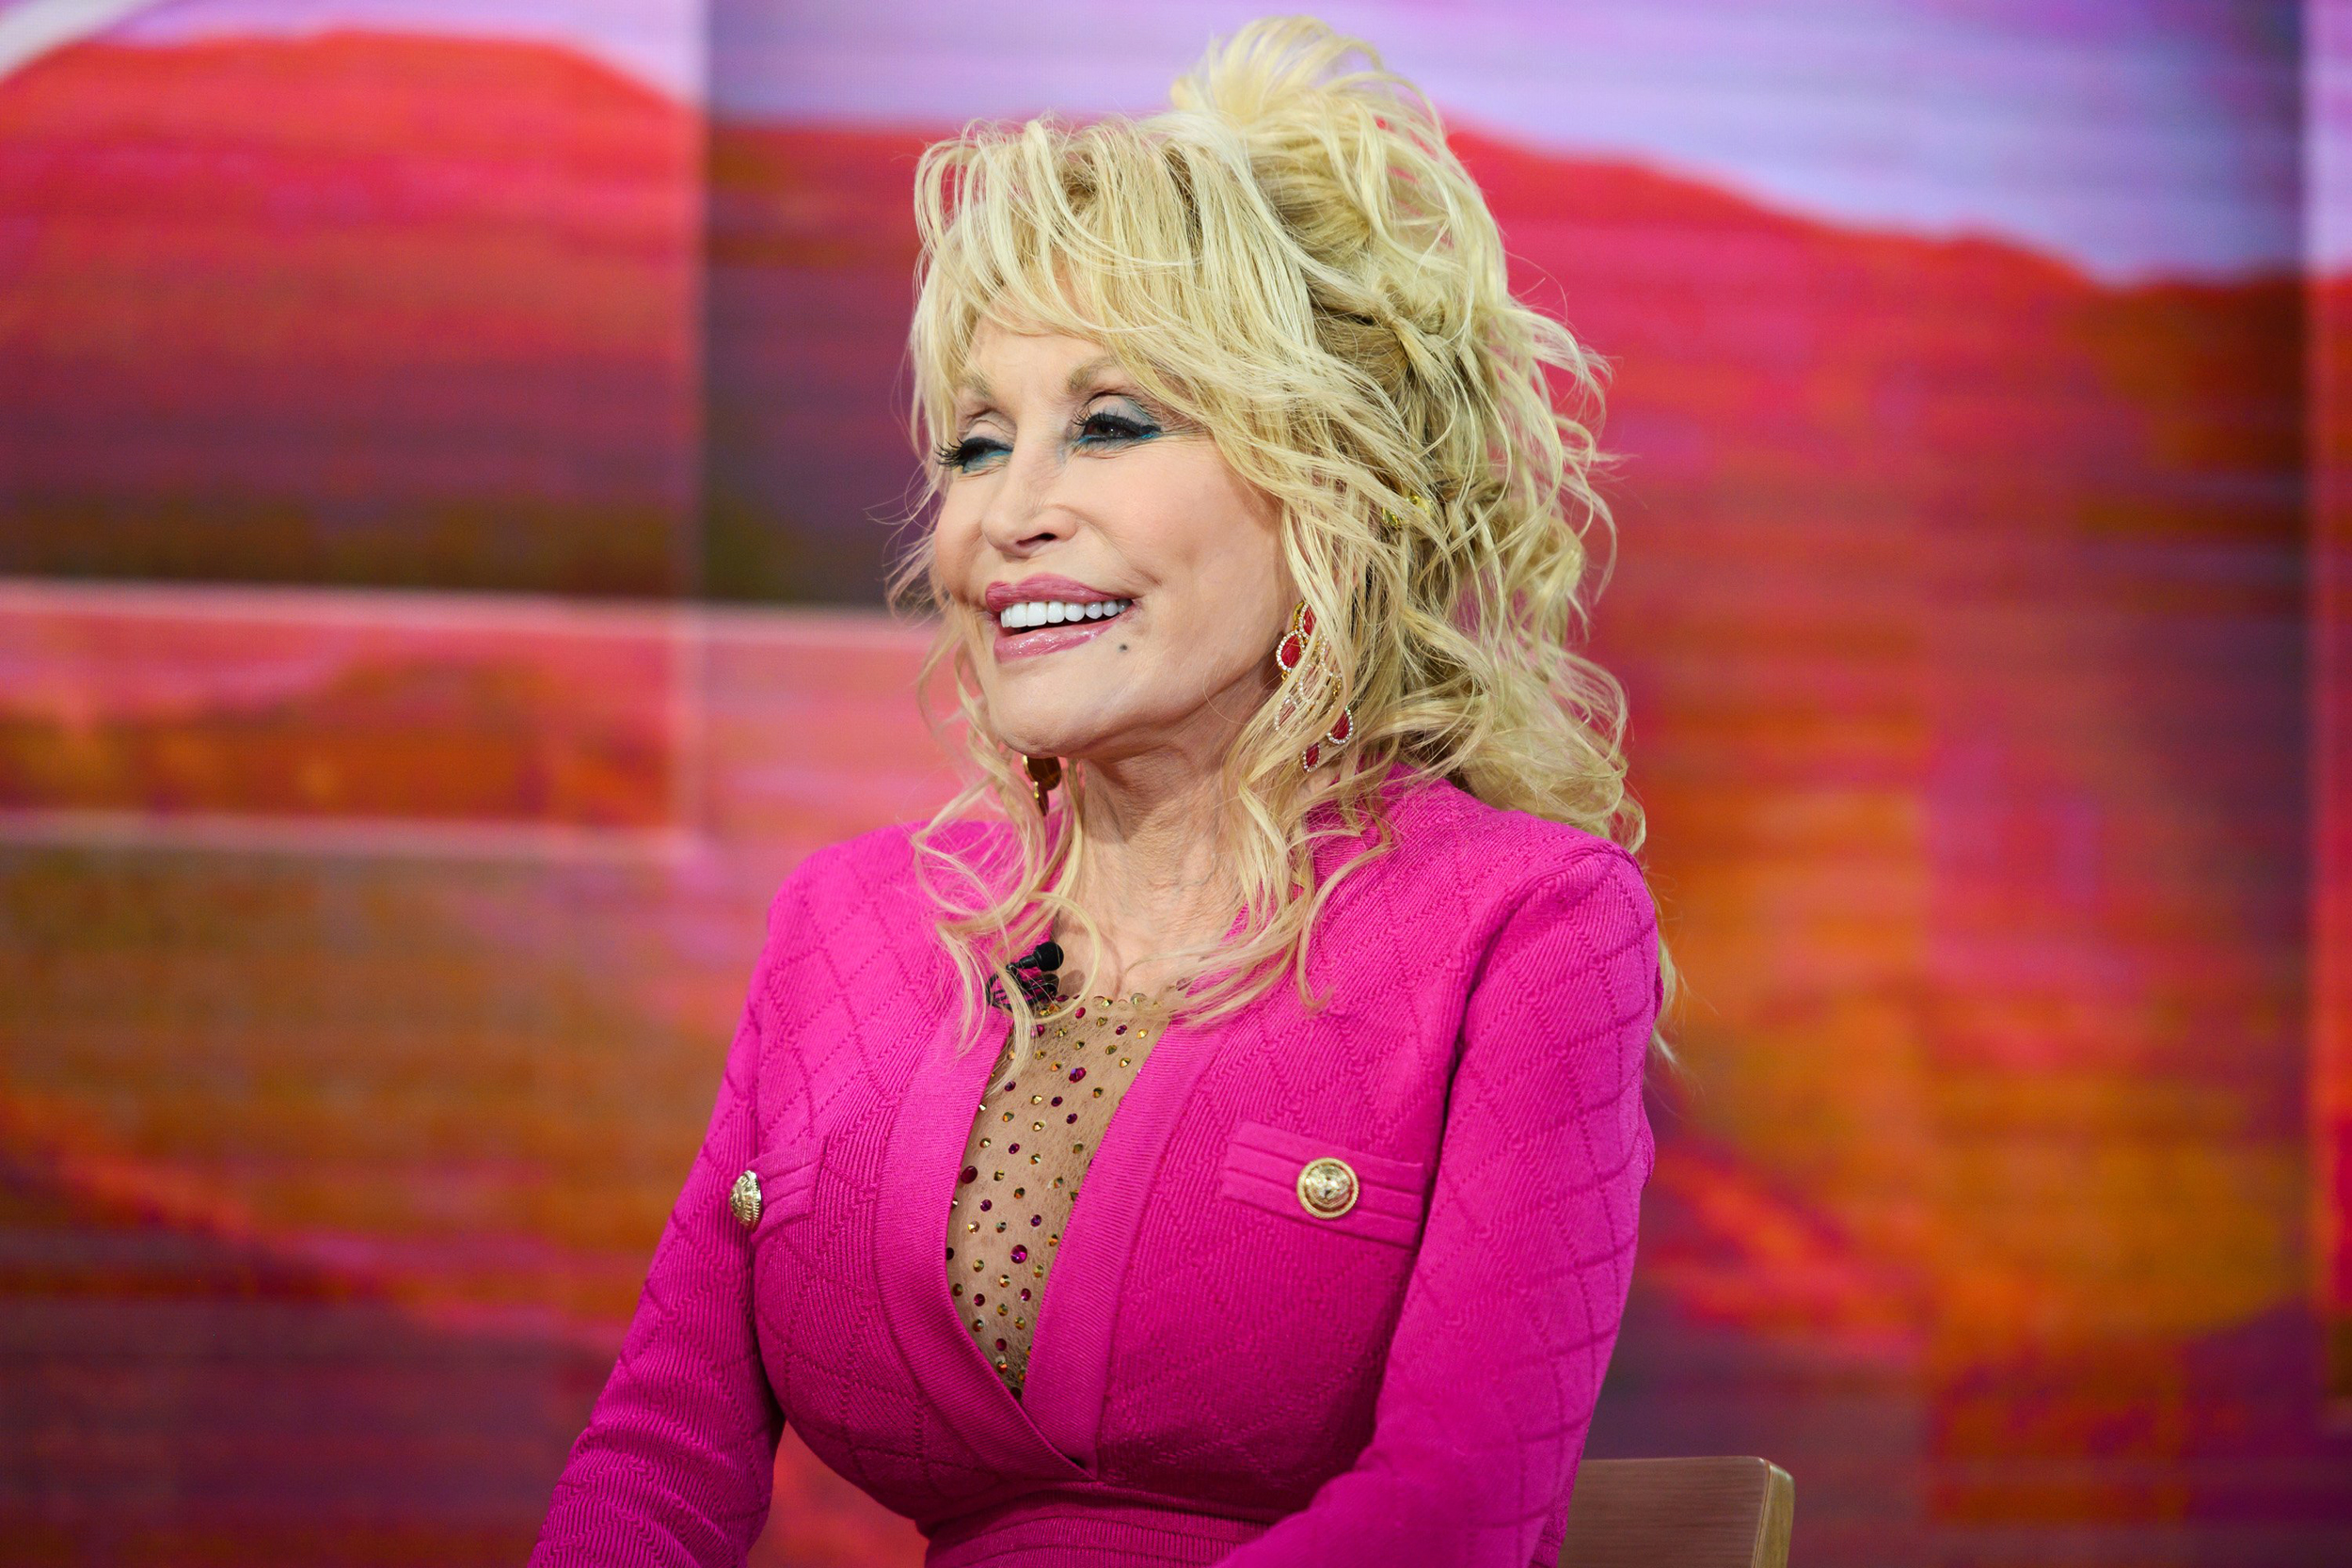 Dolly Parton responds to Lil Nas X's cover of 'Jolene' in the best way